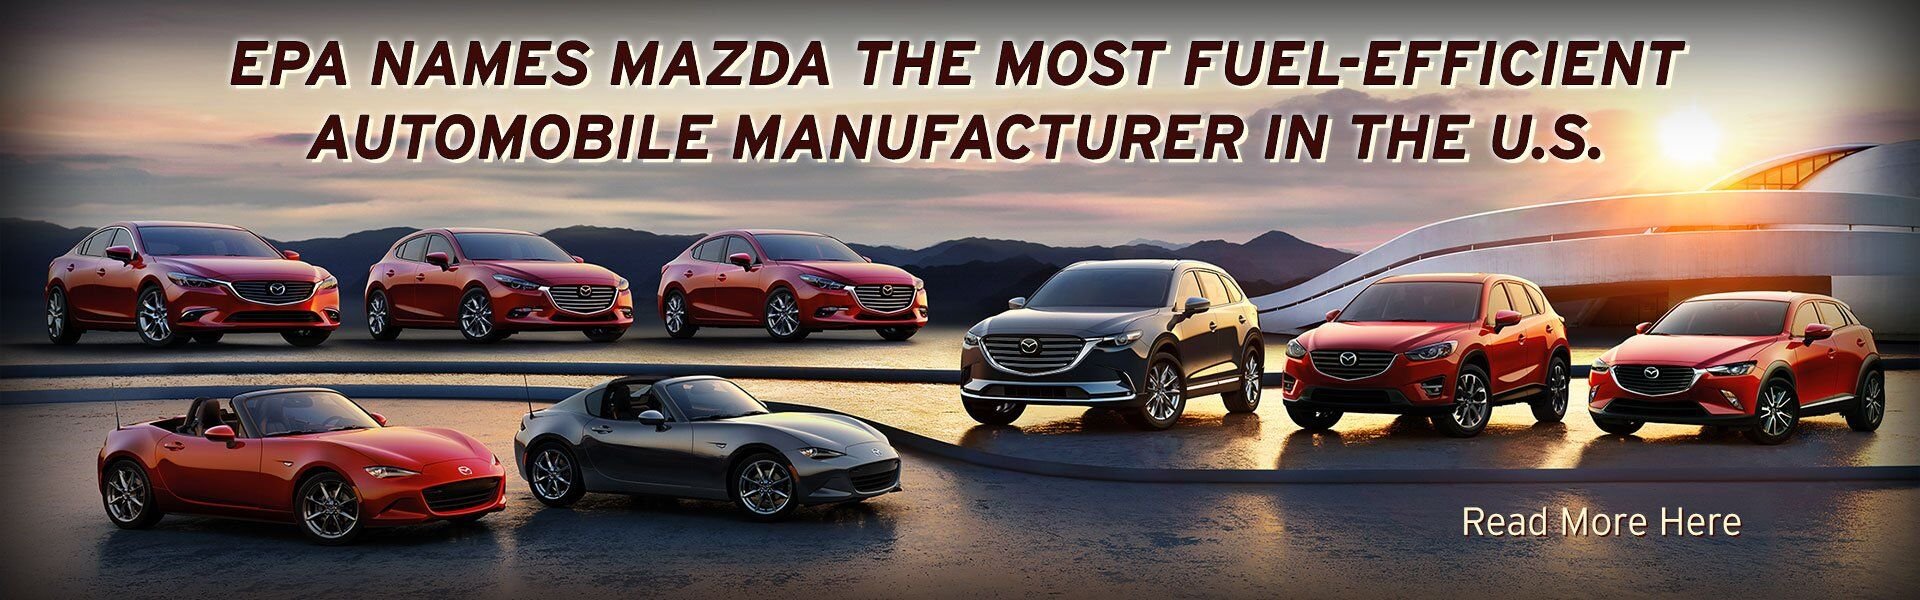 Mazda Most Fuel Efficient